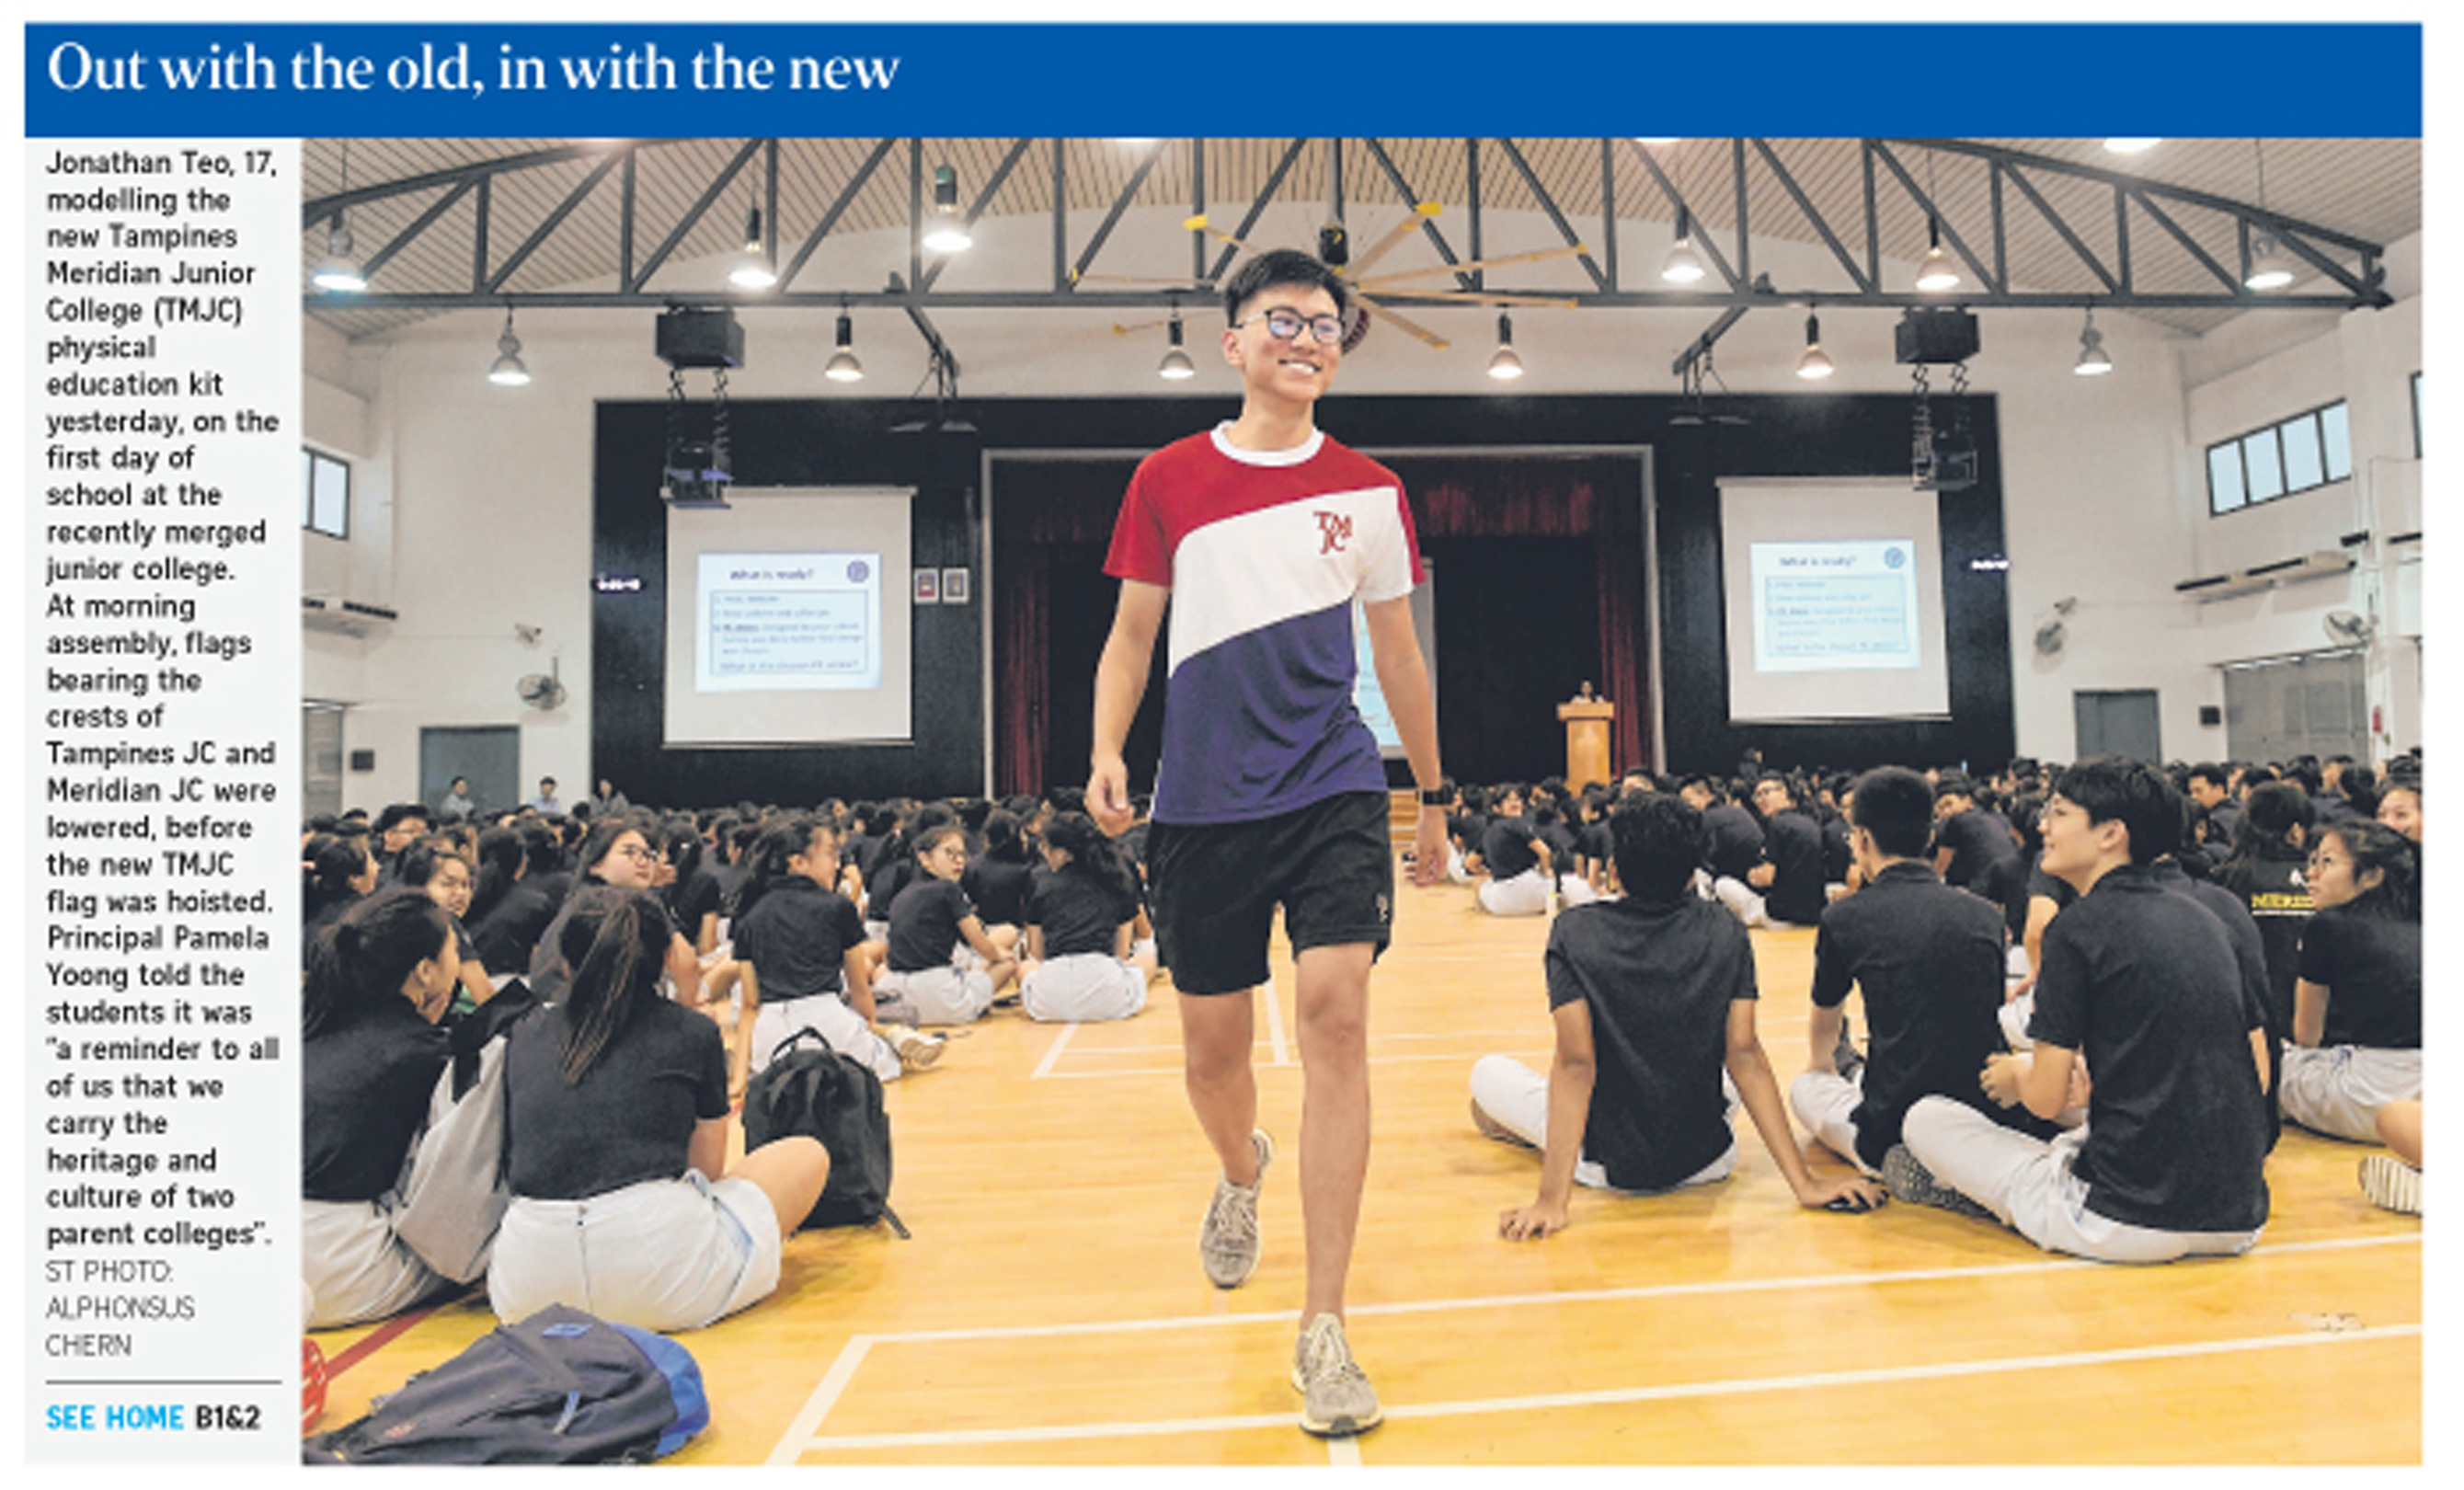 Out with the old, in with the new (The Straits Times).JPG